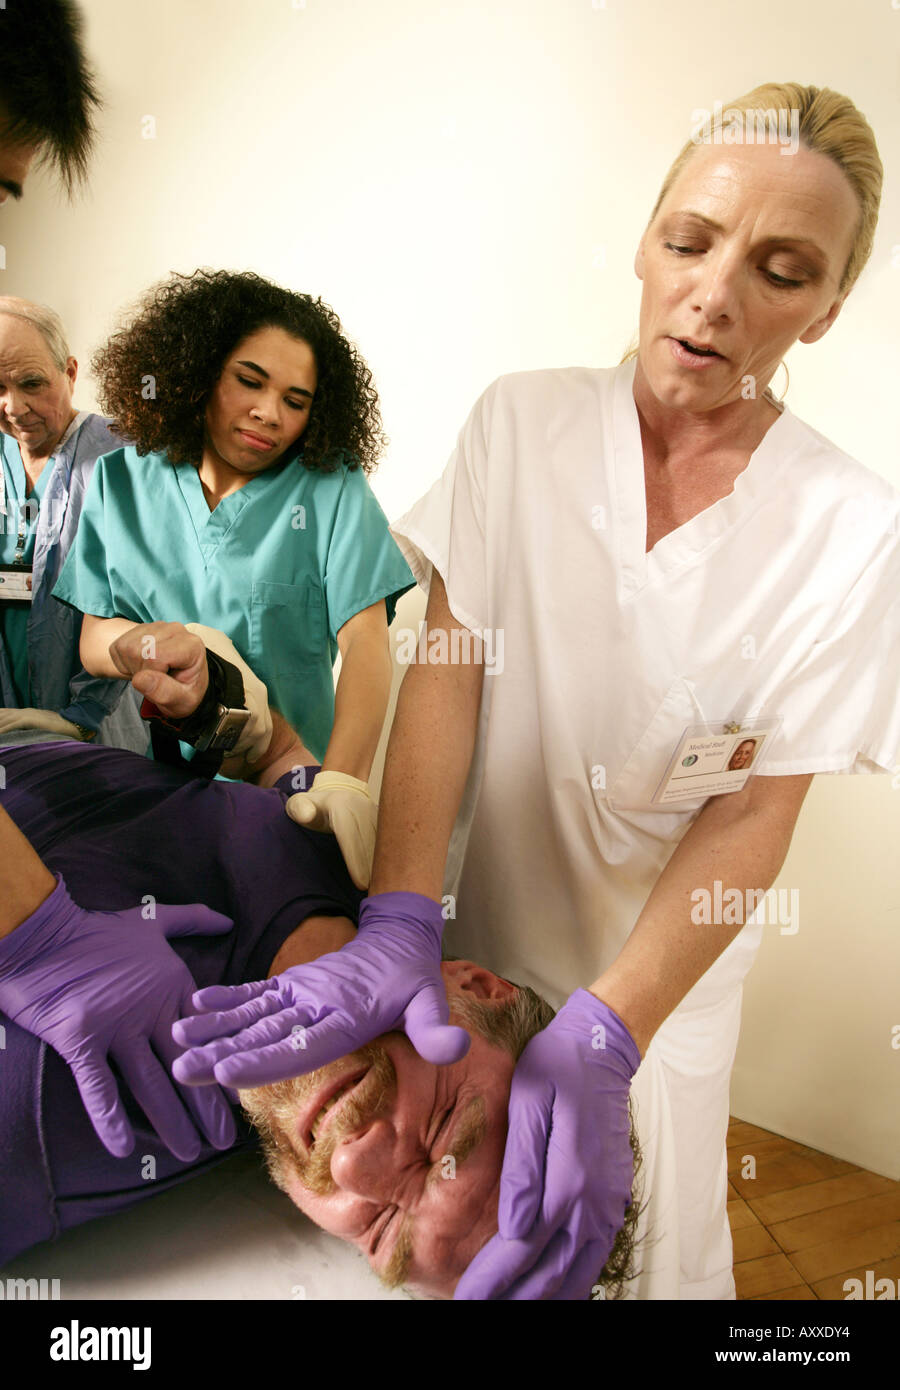 Nurse leads team to carefully restrain patient. Stock Photo